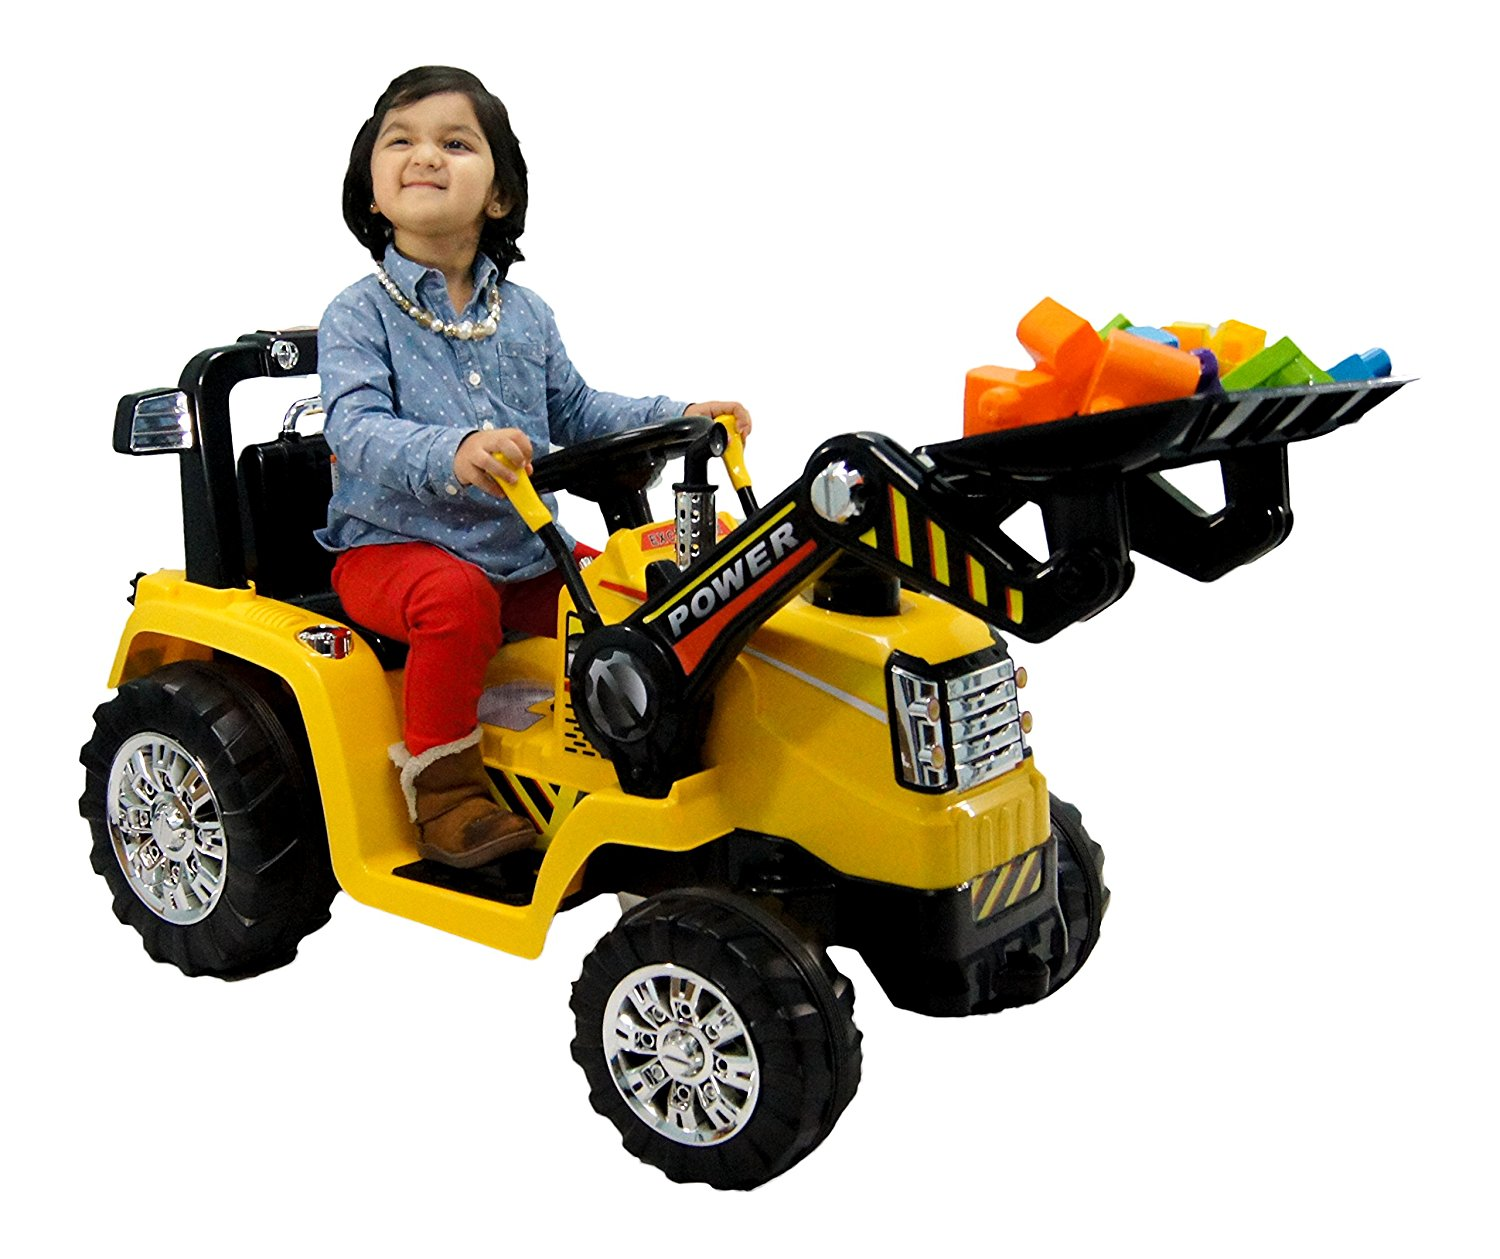 201d3bfe8bec7 Play22 Toy Tractors for Kids Ride On Excavator - Music Sounds Digger  Scooter Tractor Toys Bulldozer Includes ...